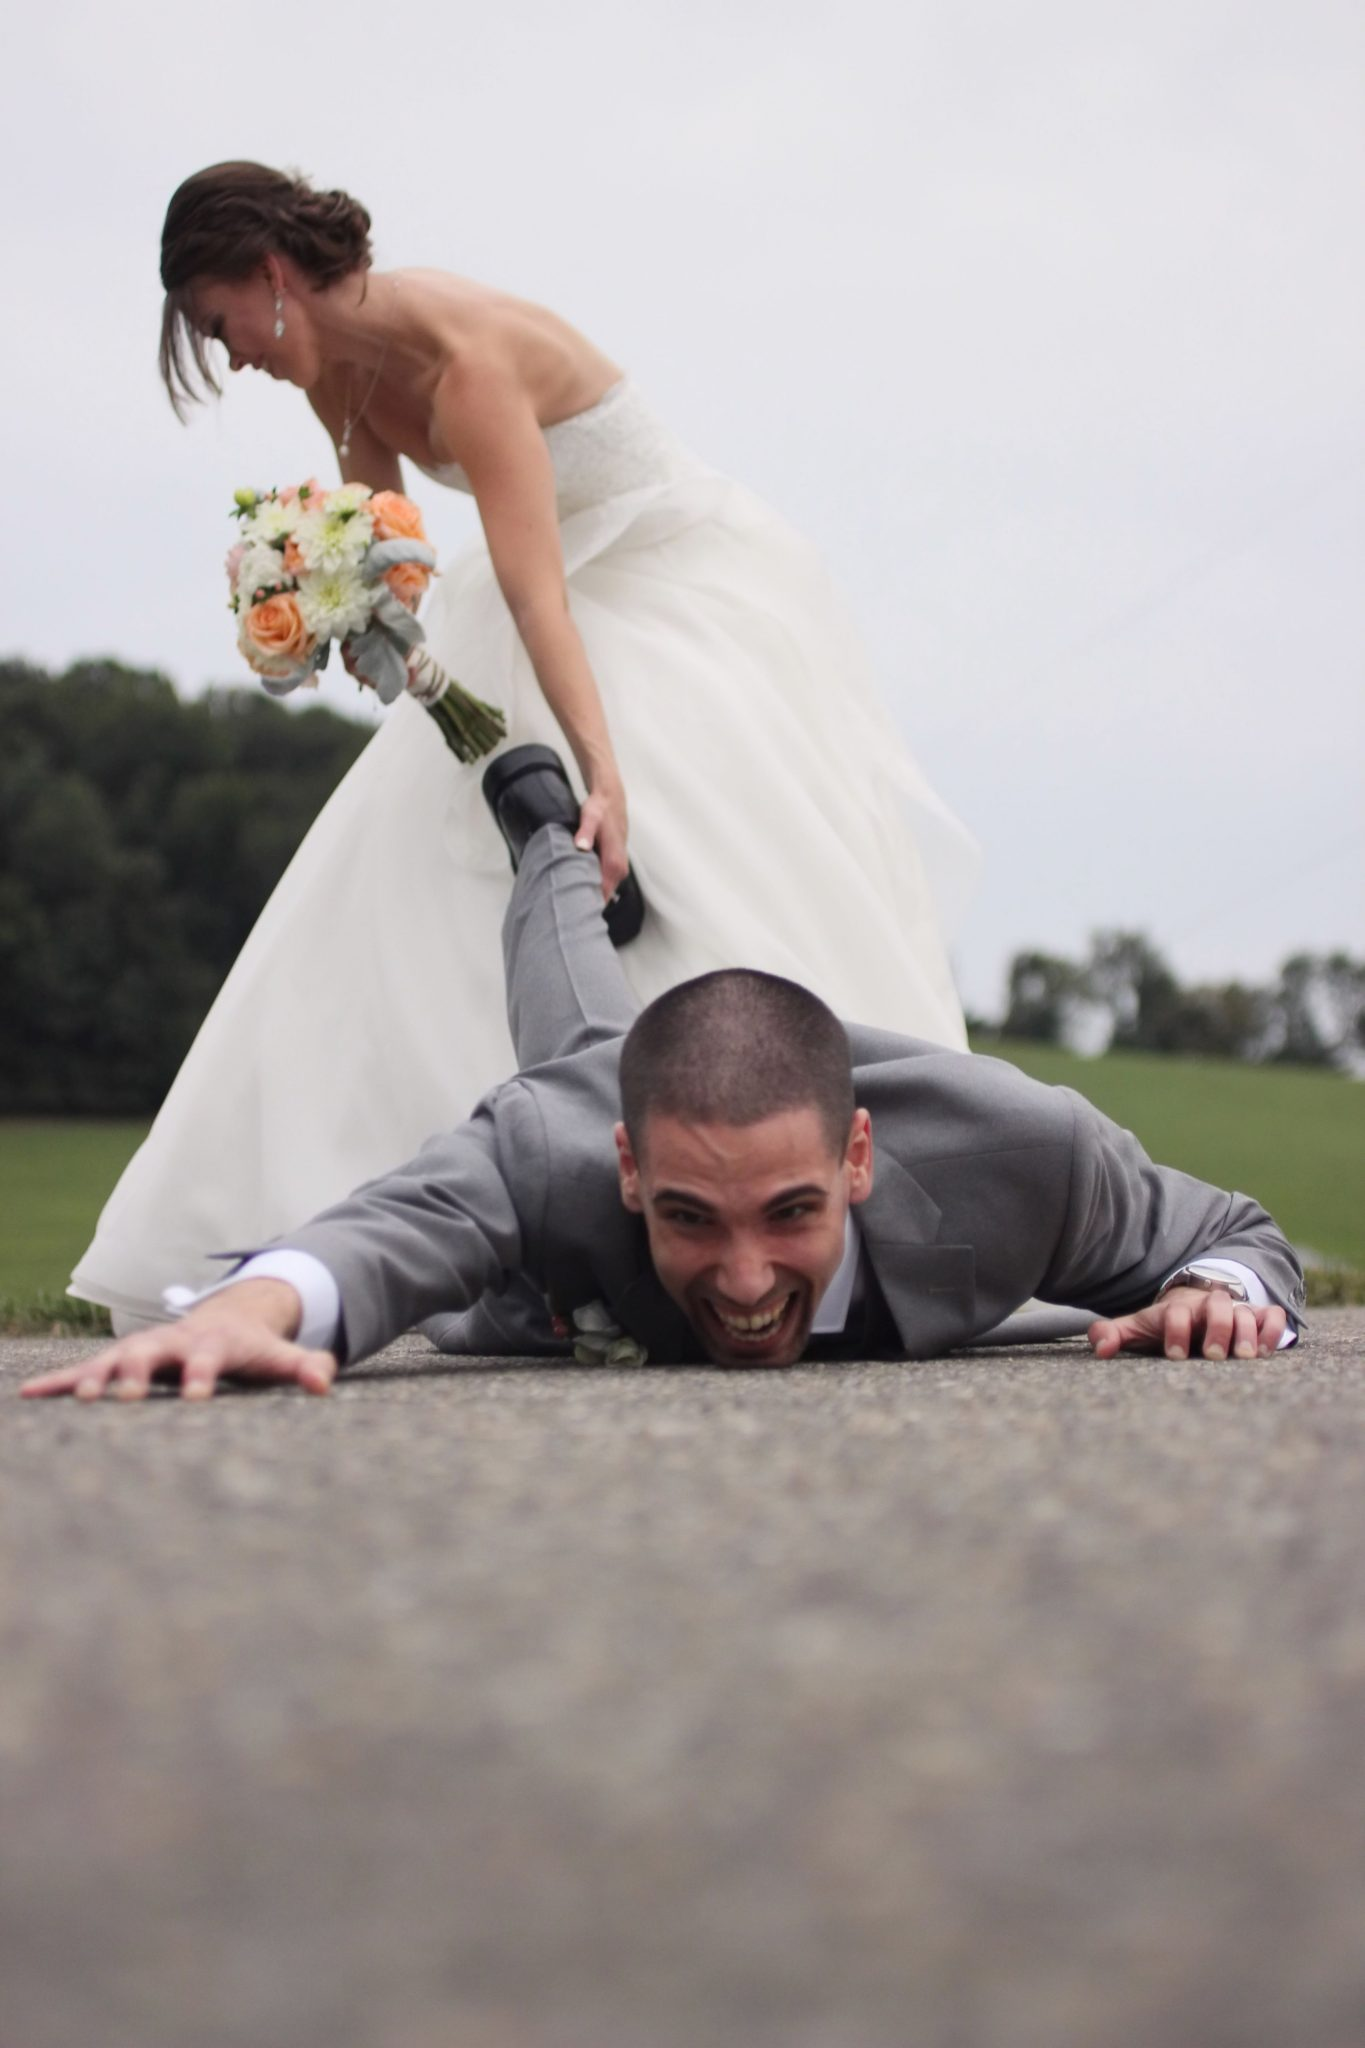 dragging the groom to the alter